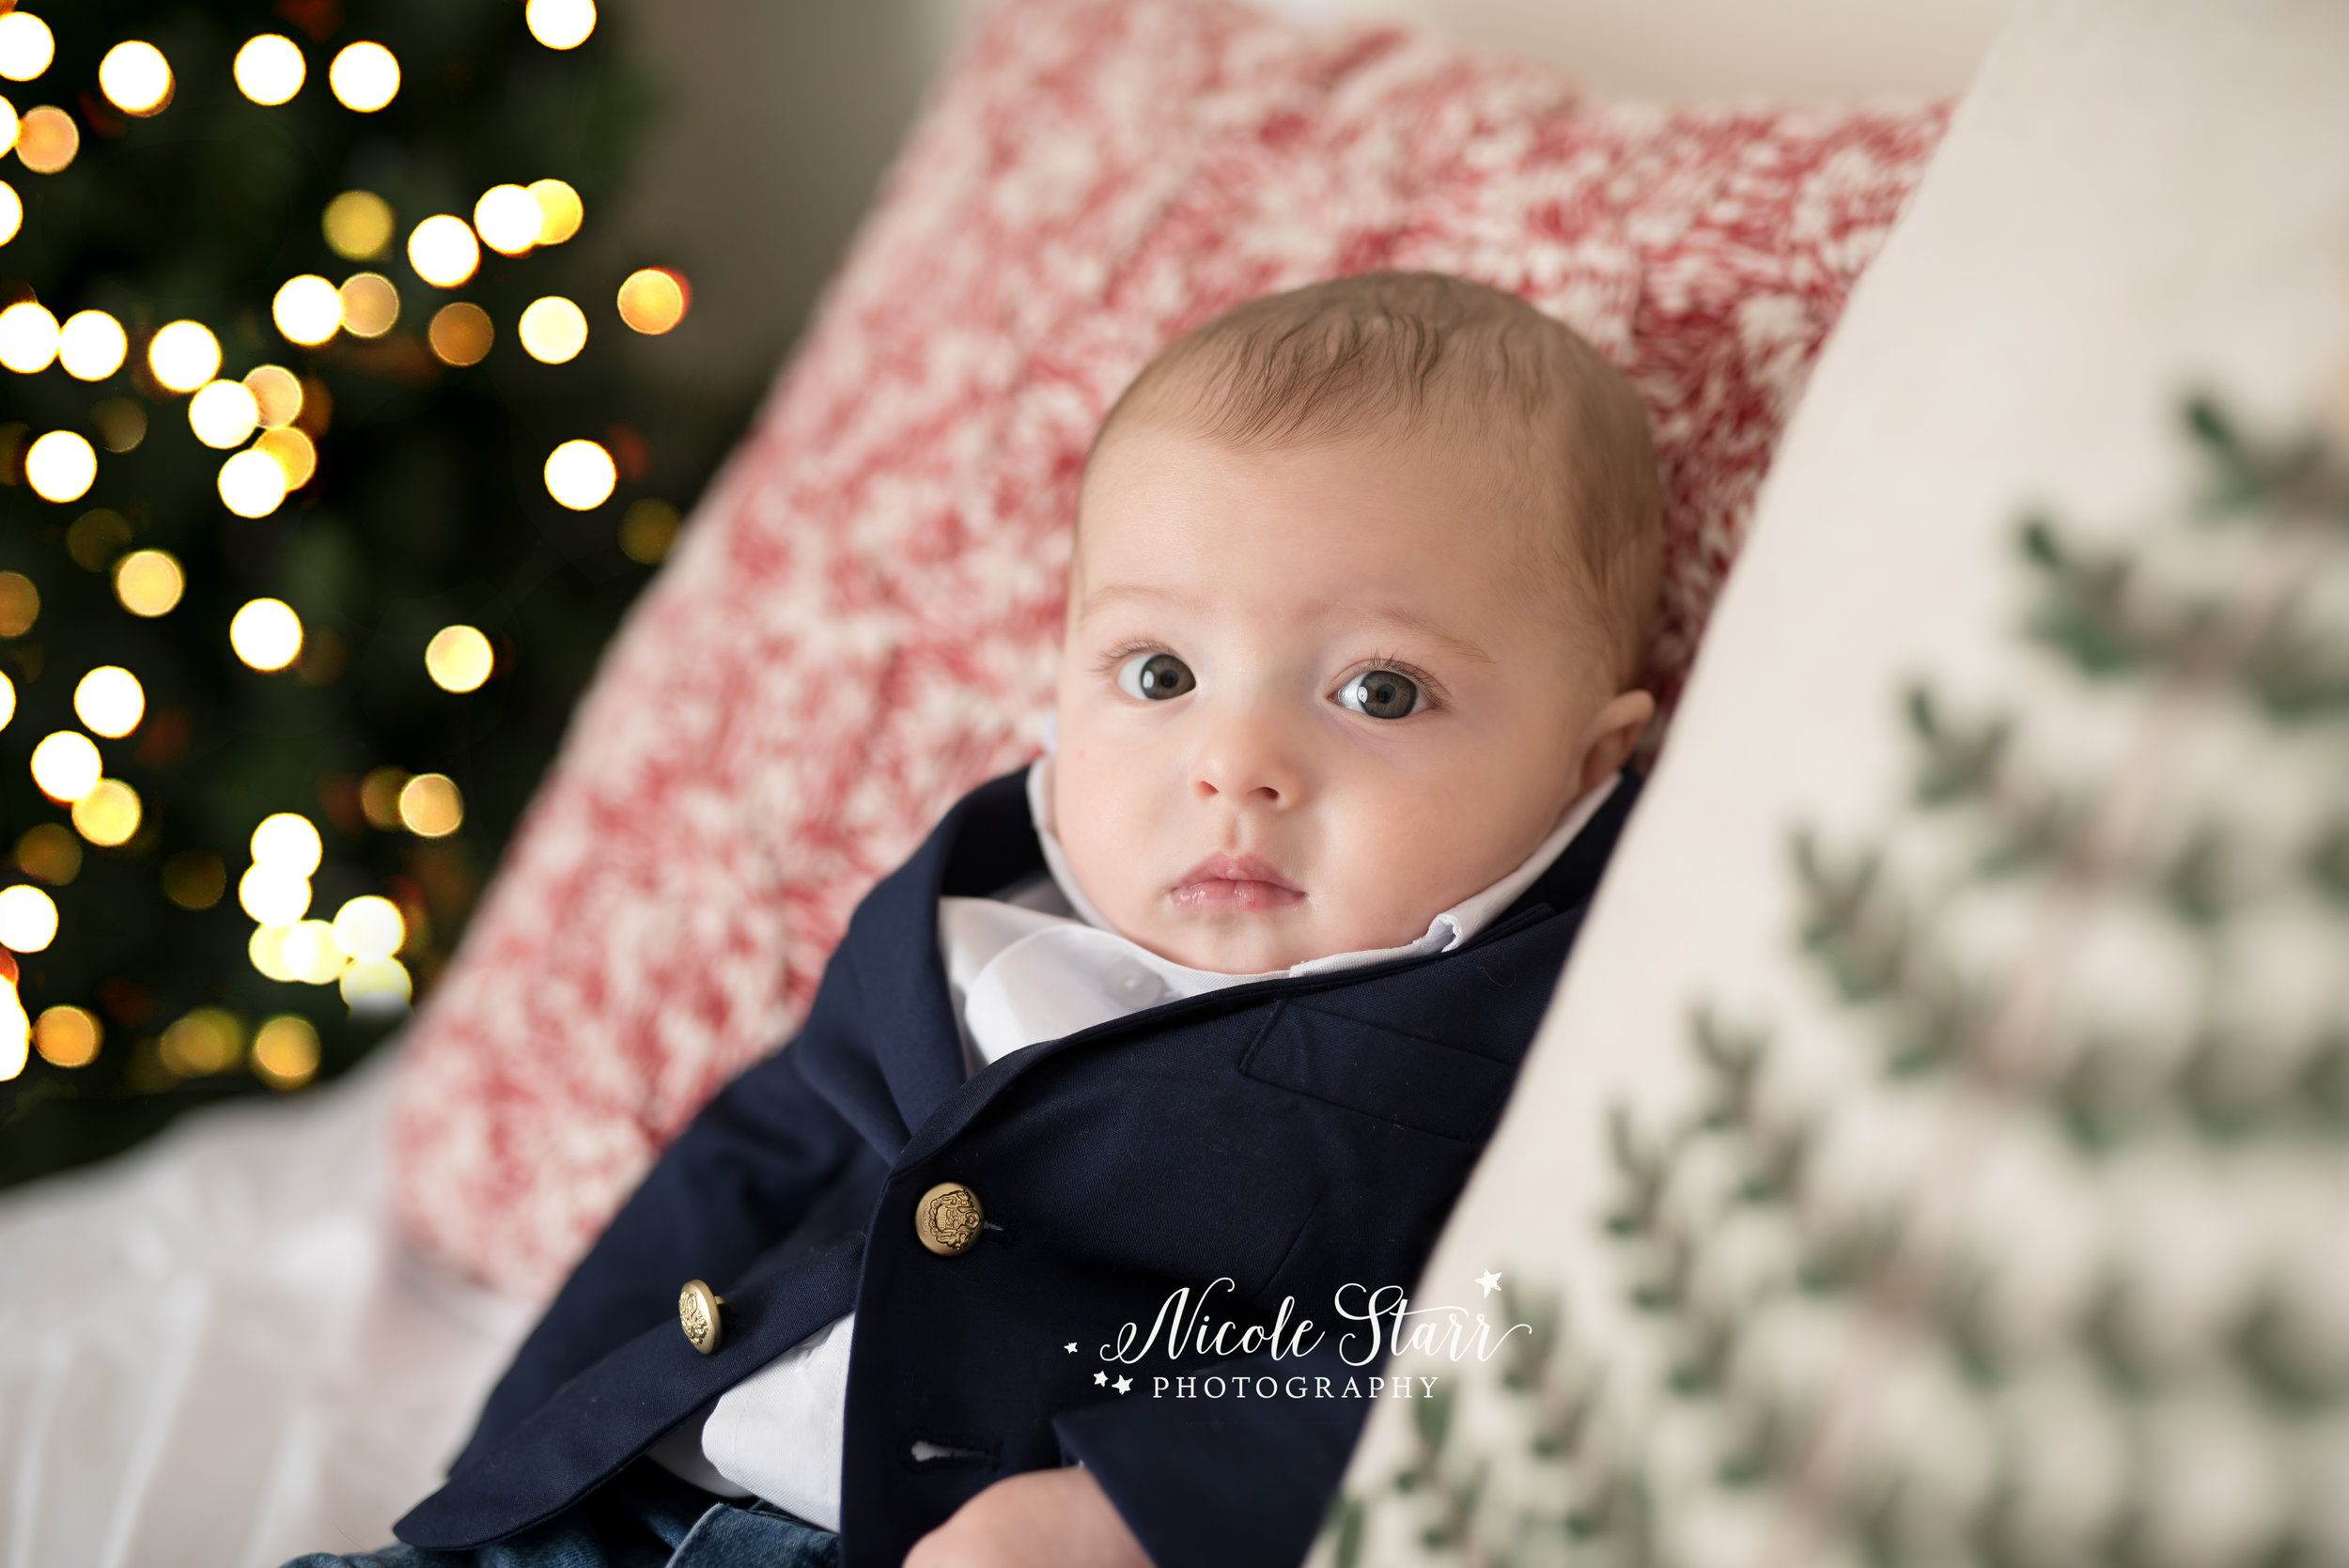 Nicole Starr Photography | Saratoga Springs Family Photographer | Boston Family Photographer | Upstate NY Family Photographer | Family Photographer | Delmar NY Family Photographer | Loudonville NY Family Photographer